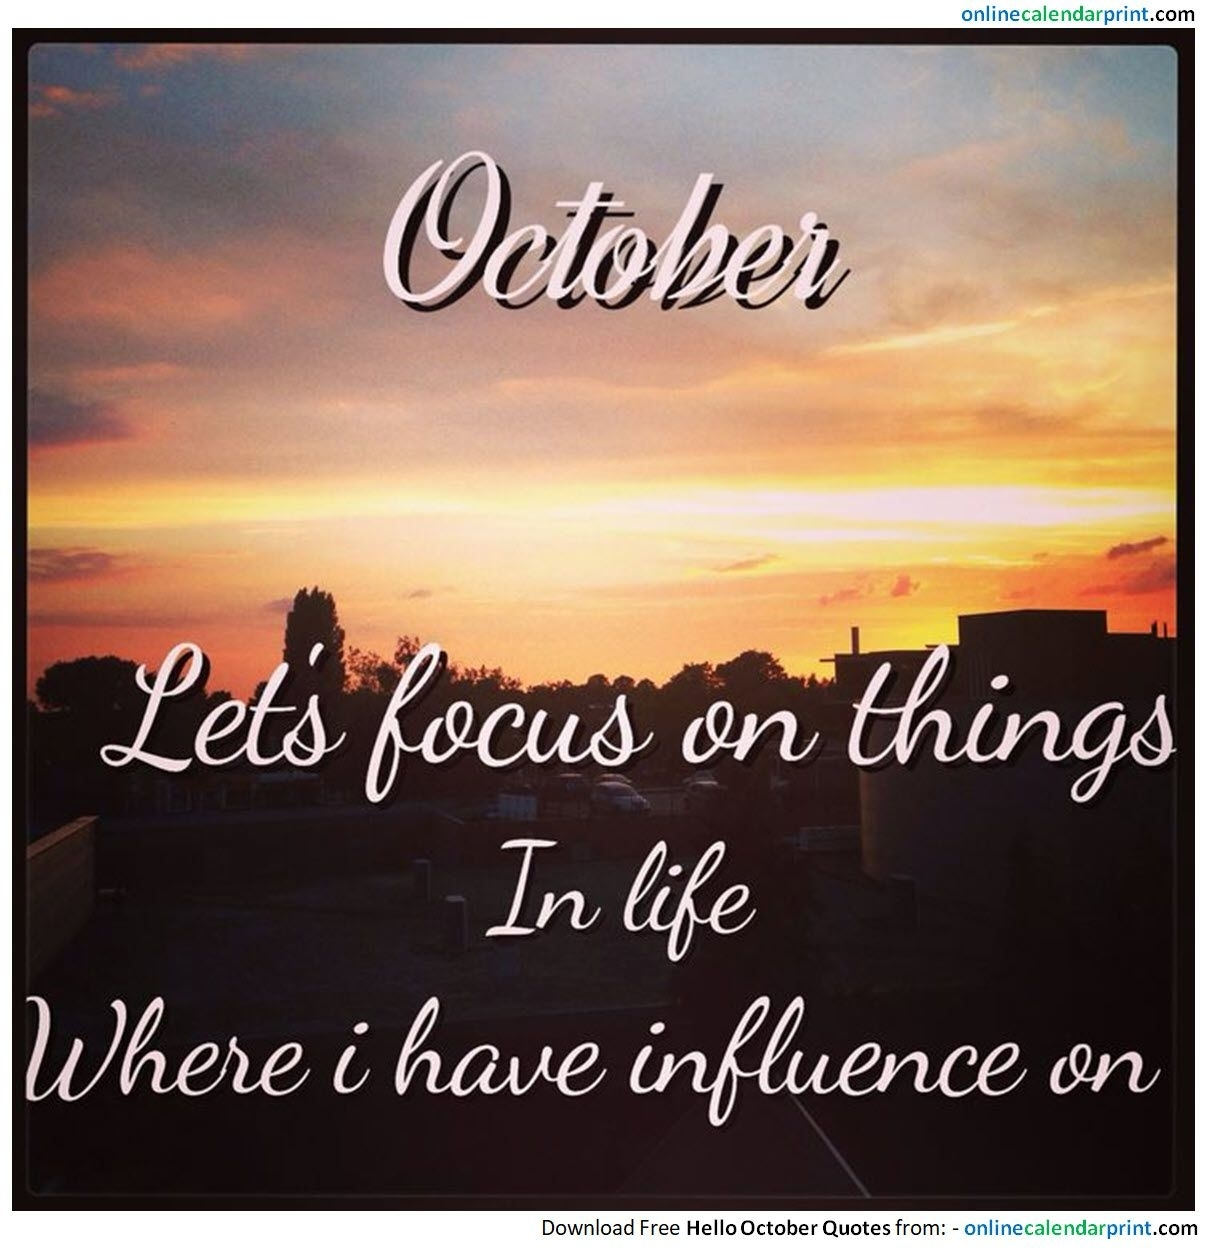 October Month Quotes Images